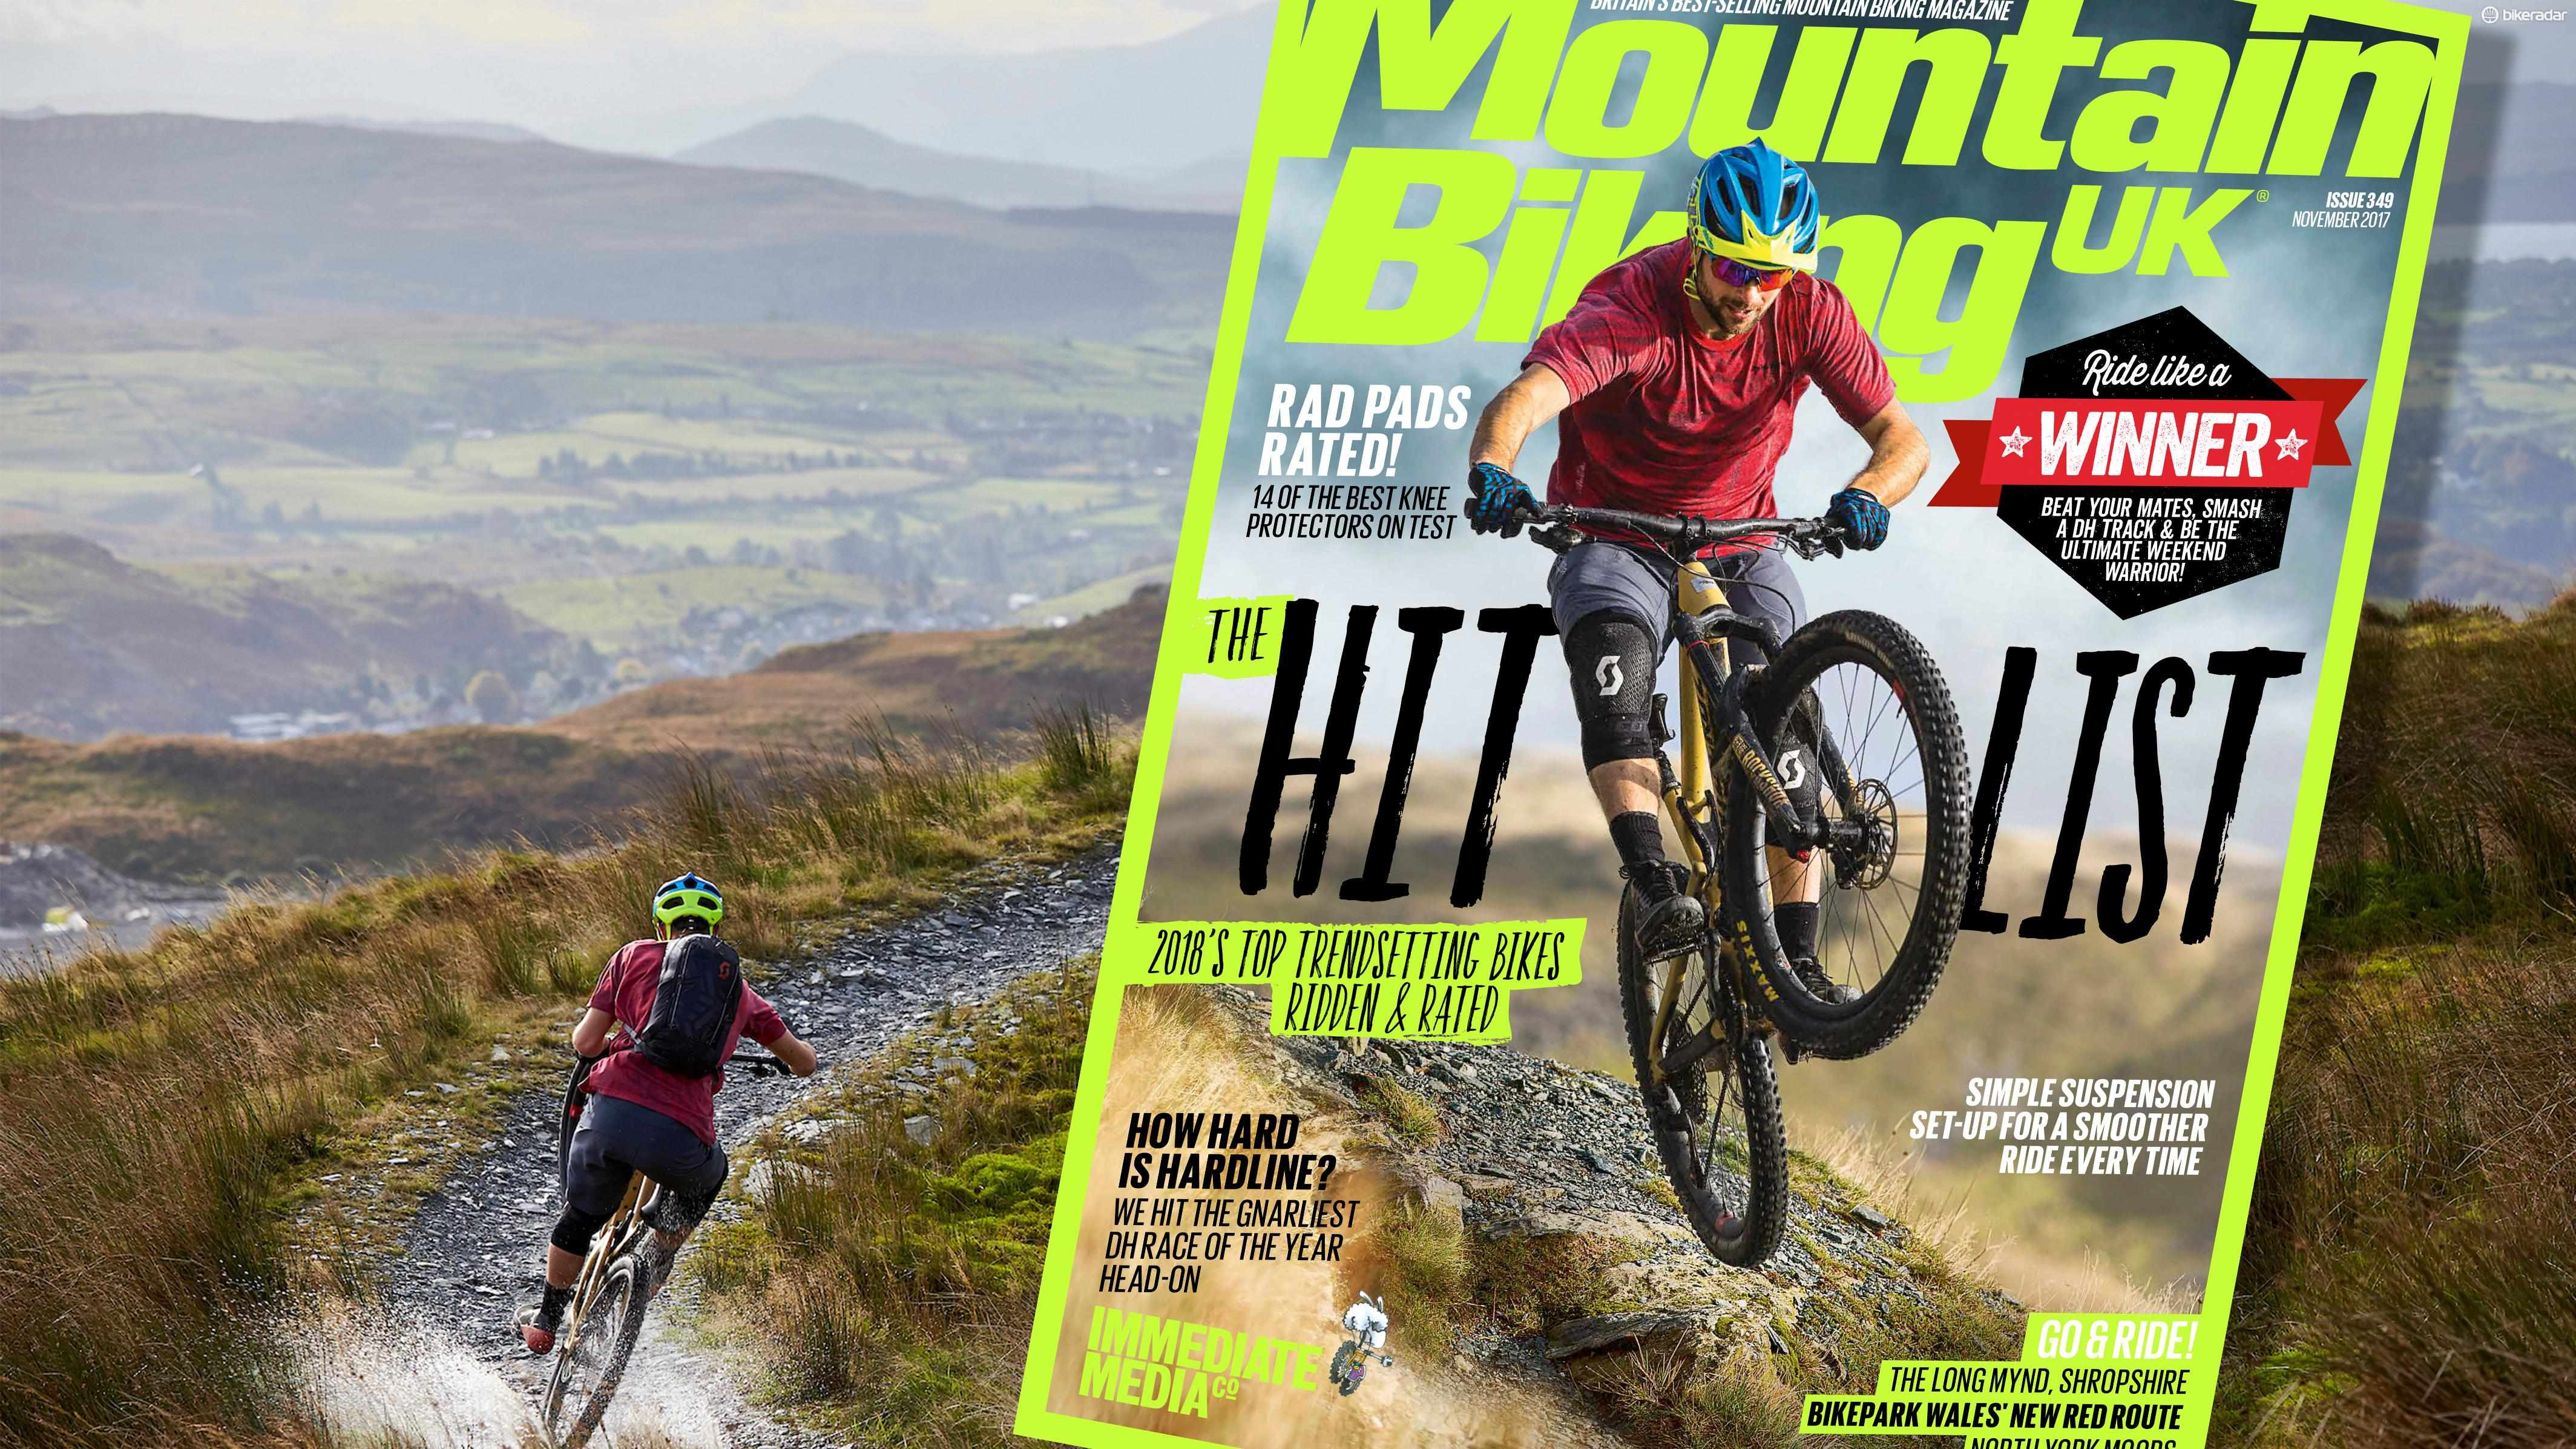 MBUK issue 349 is out now!